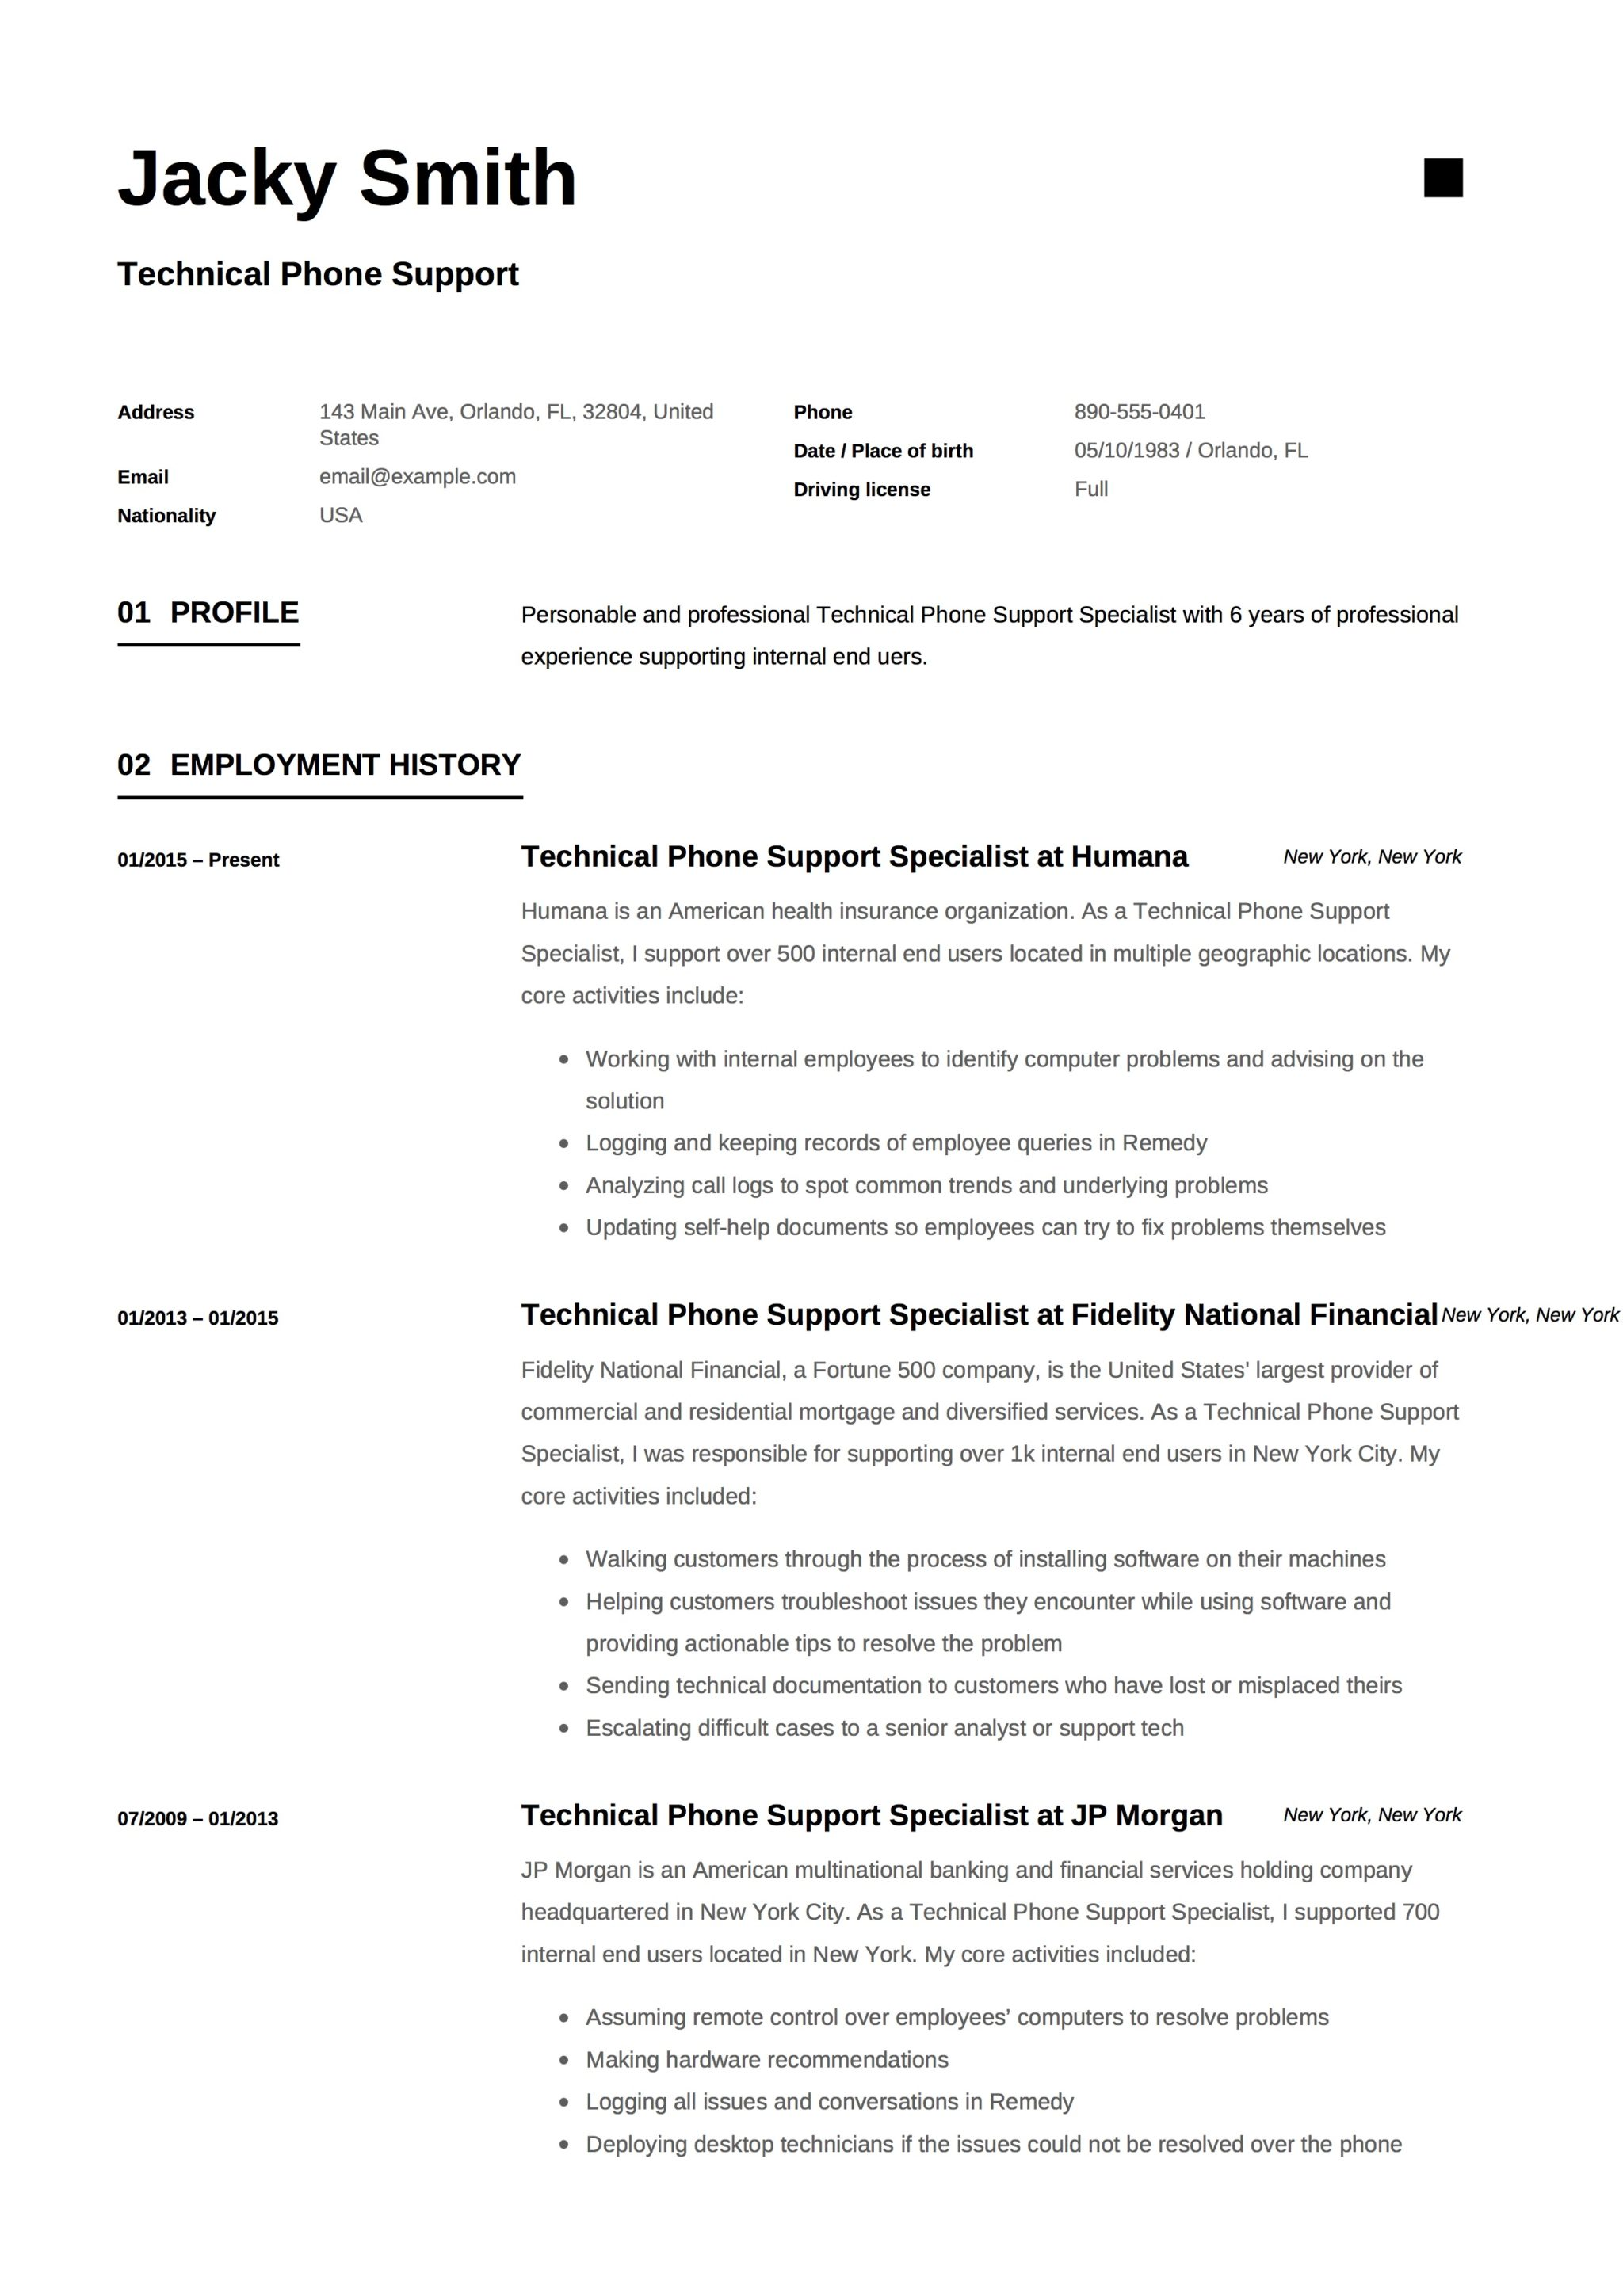 Resume Template Technical Phone Support 1